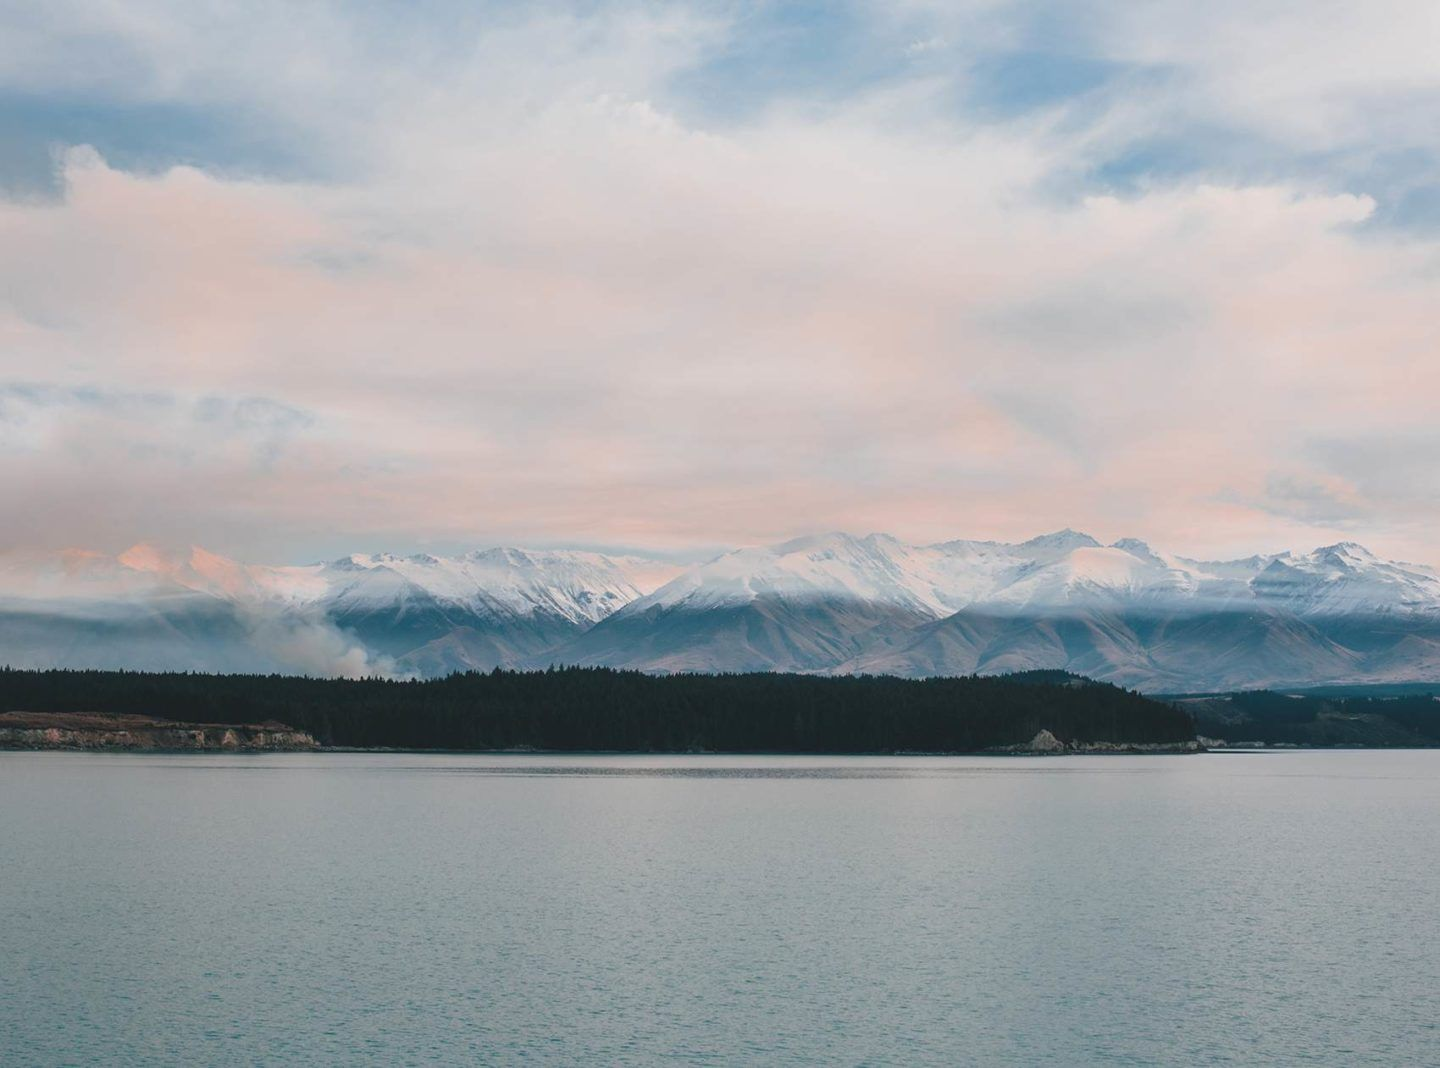 Chiara Zonca Photographs New Zealand's Other-Wordly Landscapes